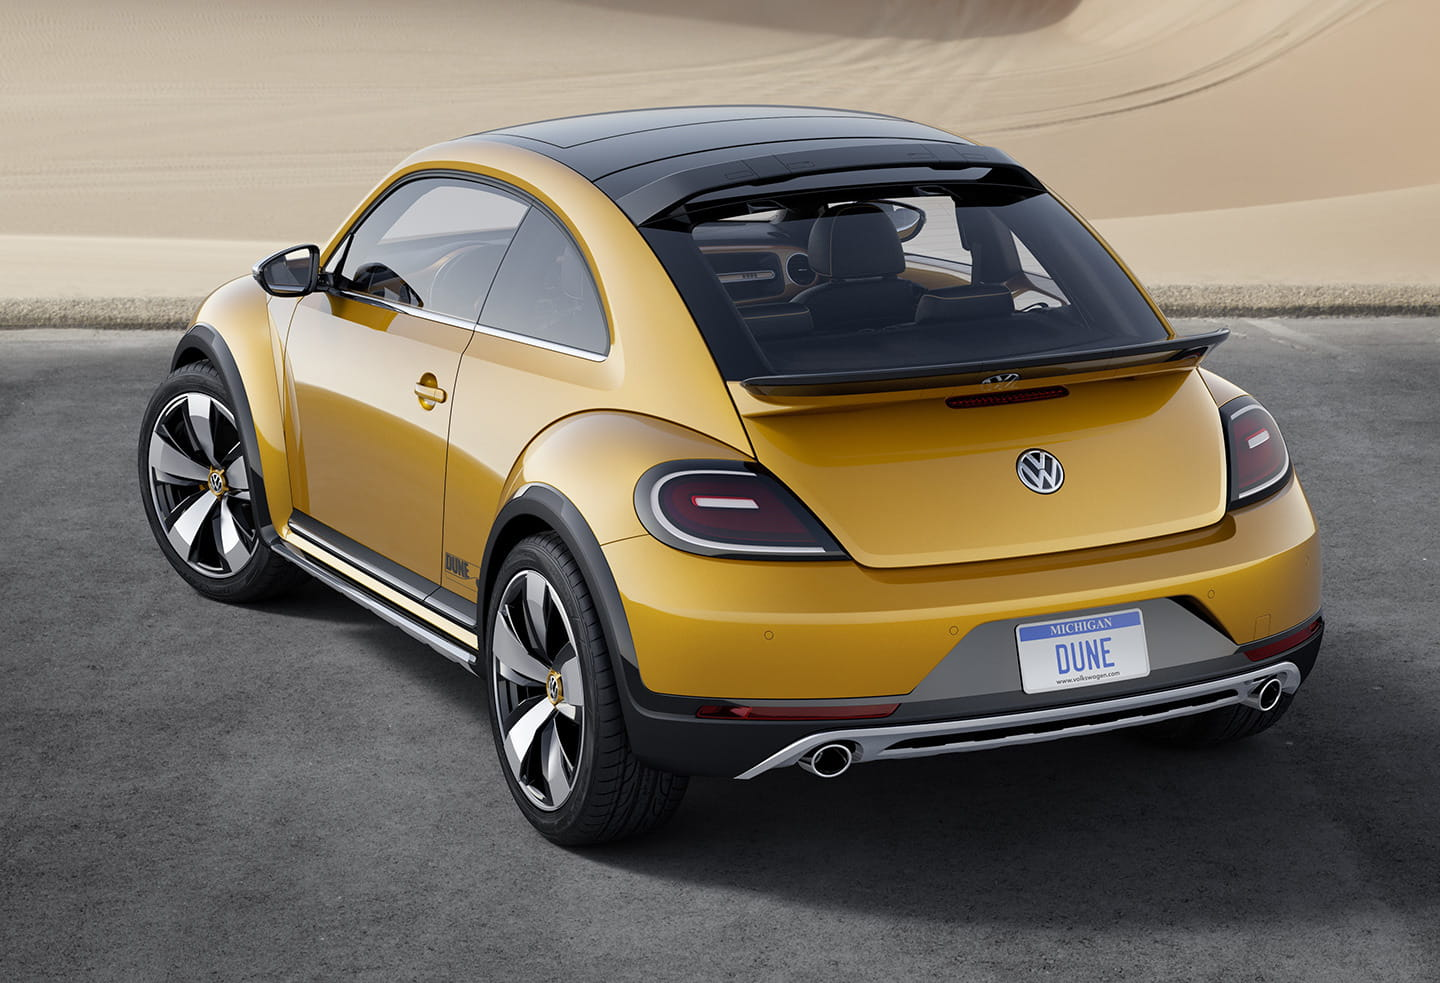 el volkswagen beetle dune llegar en 2016 un repaso en im genes al escarabajo campero. Black Bedroom Furniture Sets. Home Design Ideas